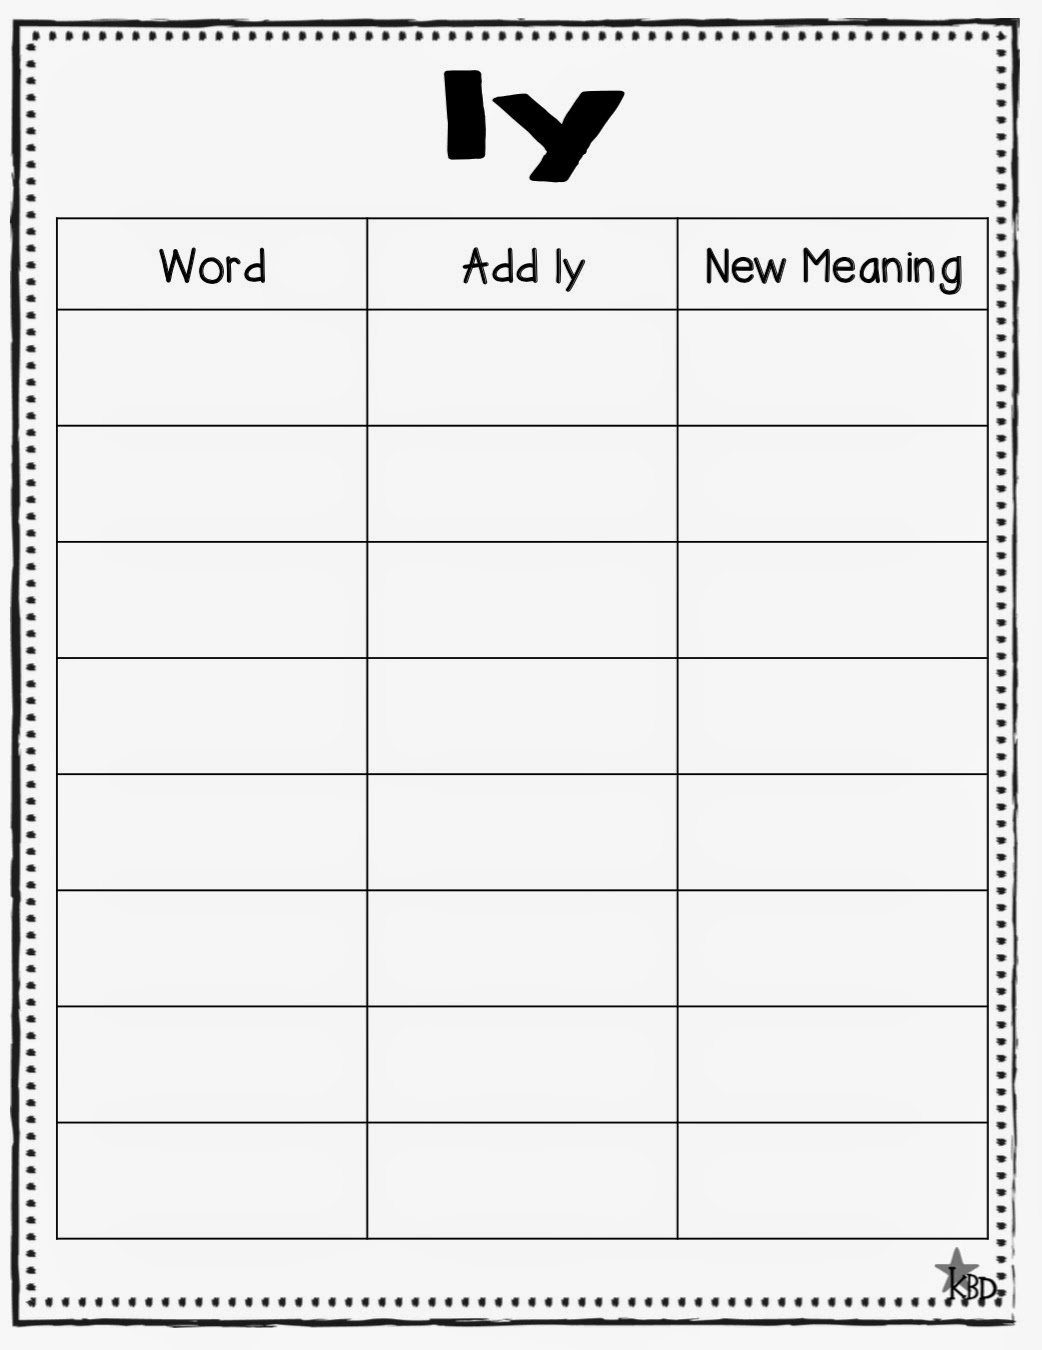 ... ful less ly anchor chart ful less worksheet ful less ly worksheet